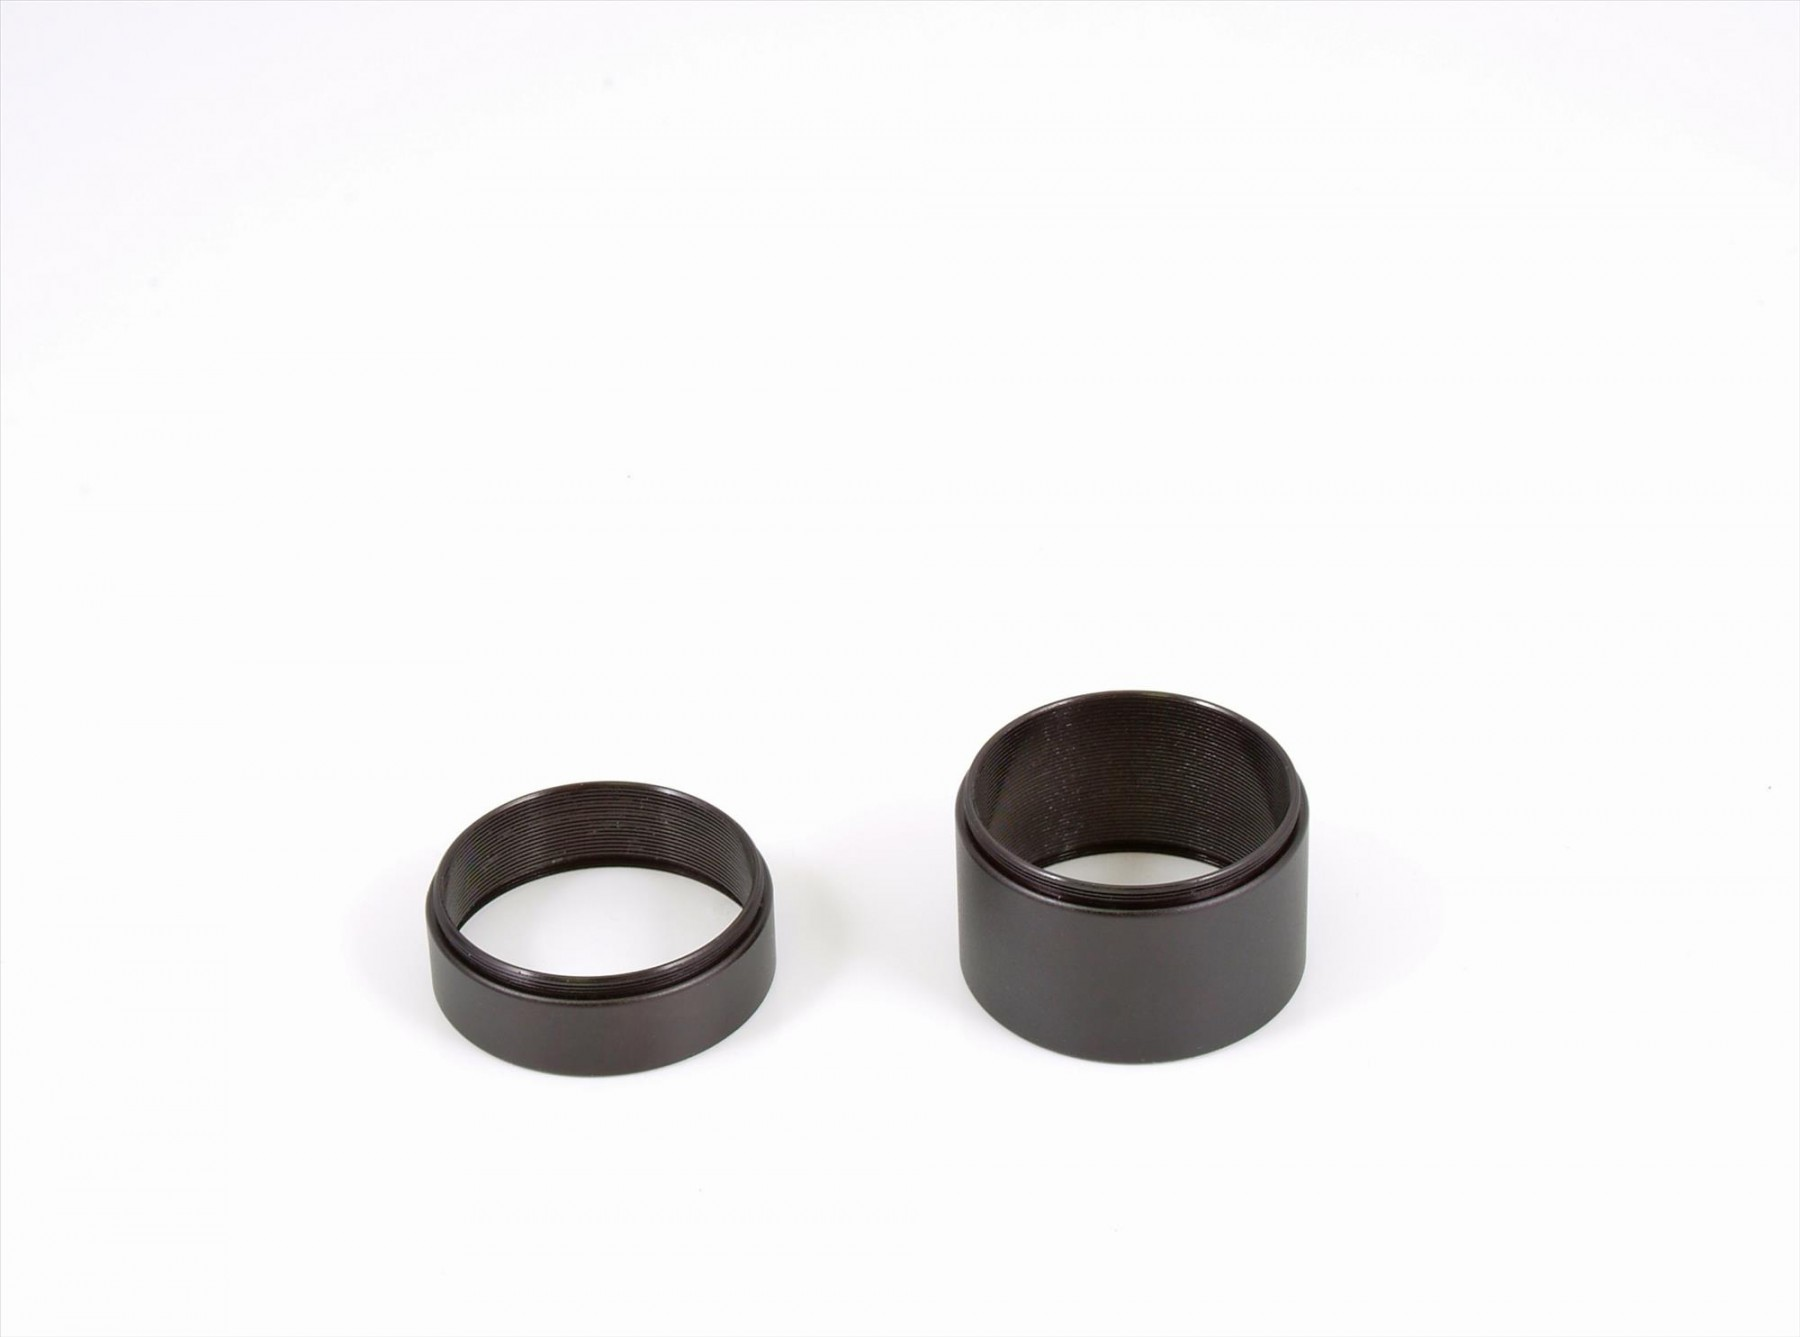 Combination: Hyperion 14mm + 28mm Finetuning Ring